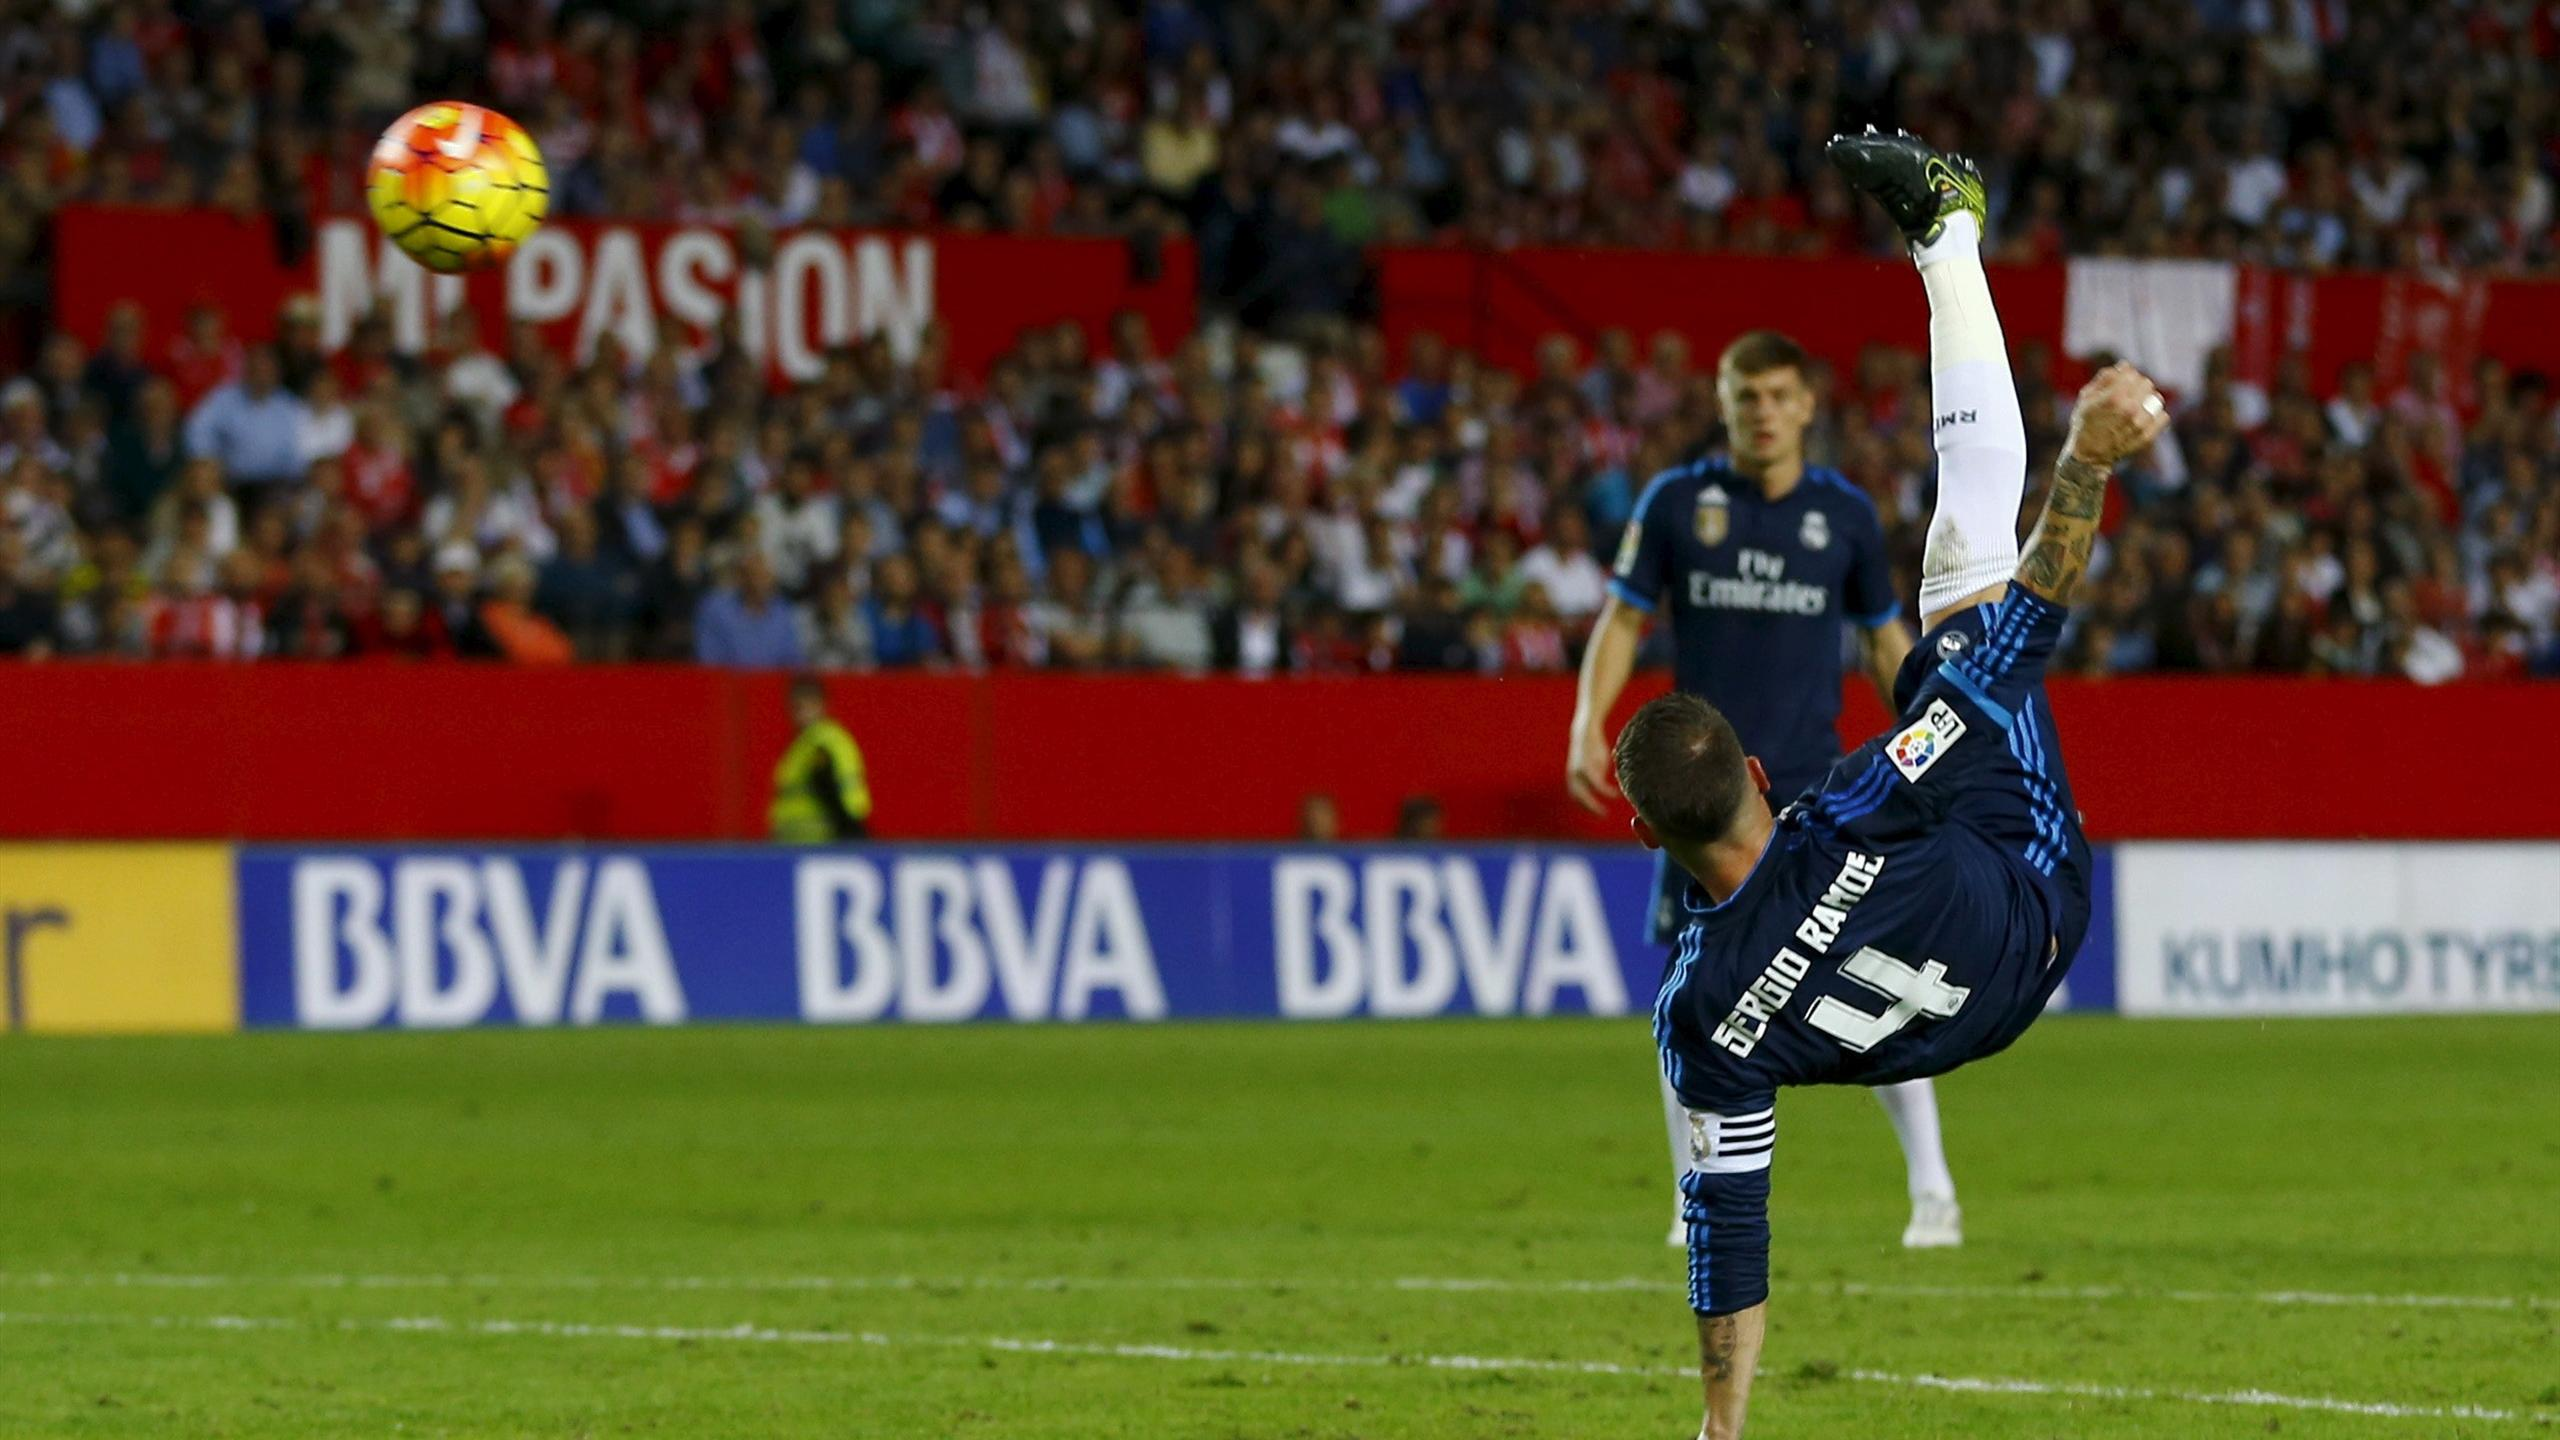 Real Madrid's Sergio Ramos kicks the ball to score against Sevilla